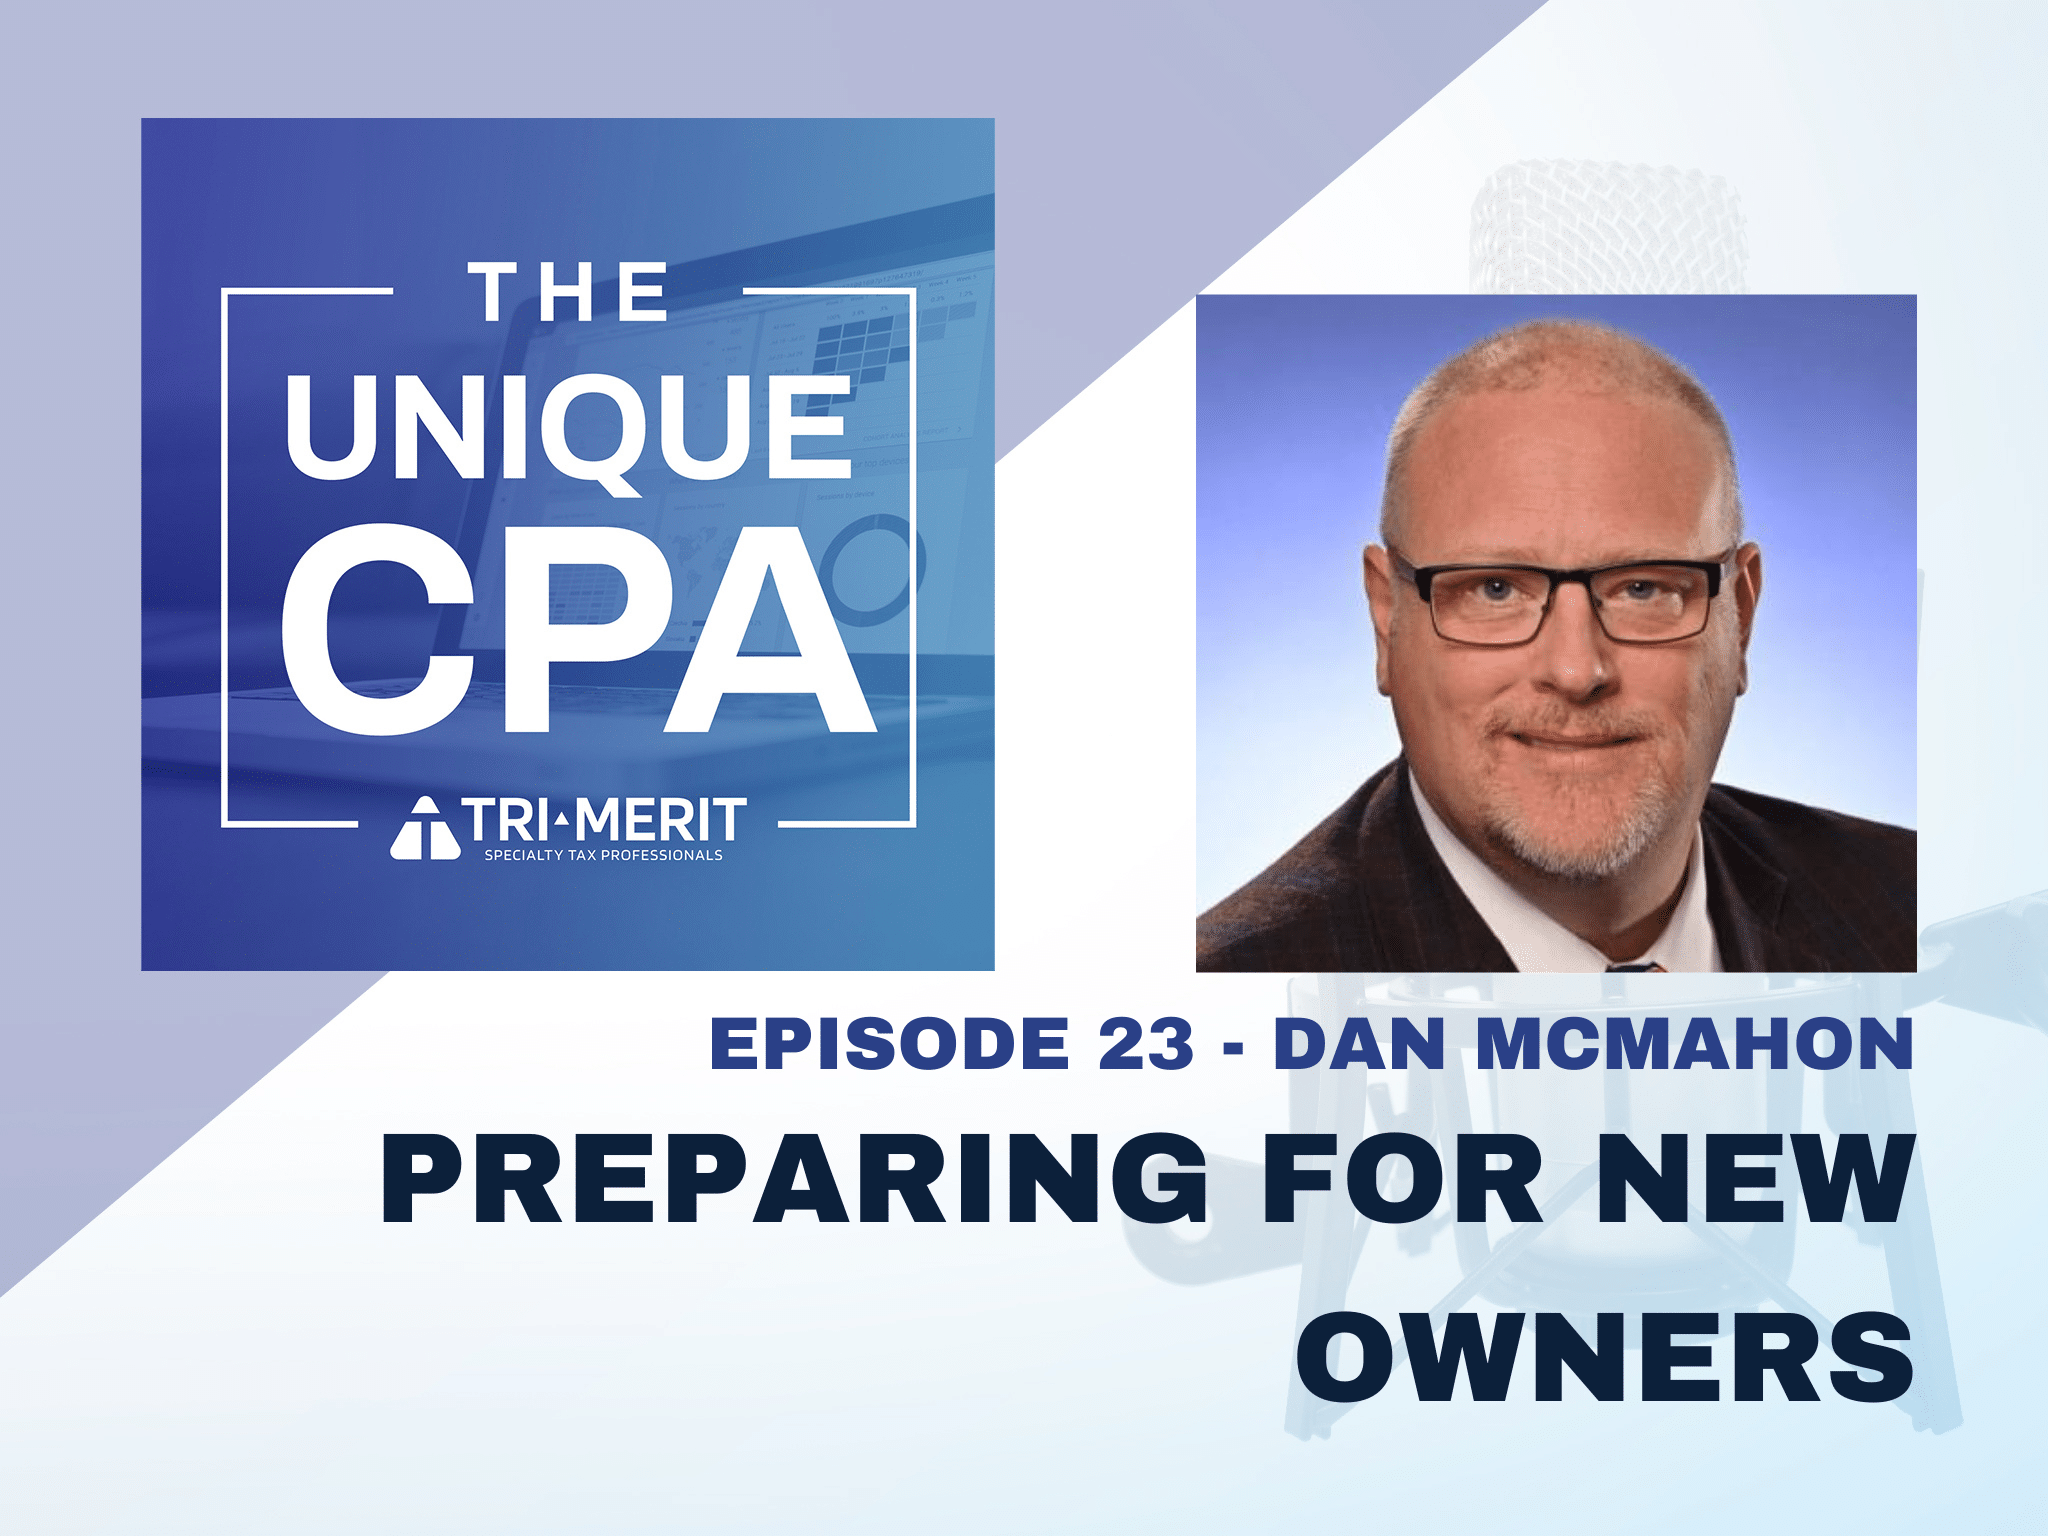 The Unique CPA Feature Image Ep 23 Dan McMahon - Preparing for New Owners - Tri-Merit